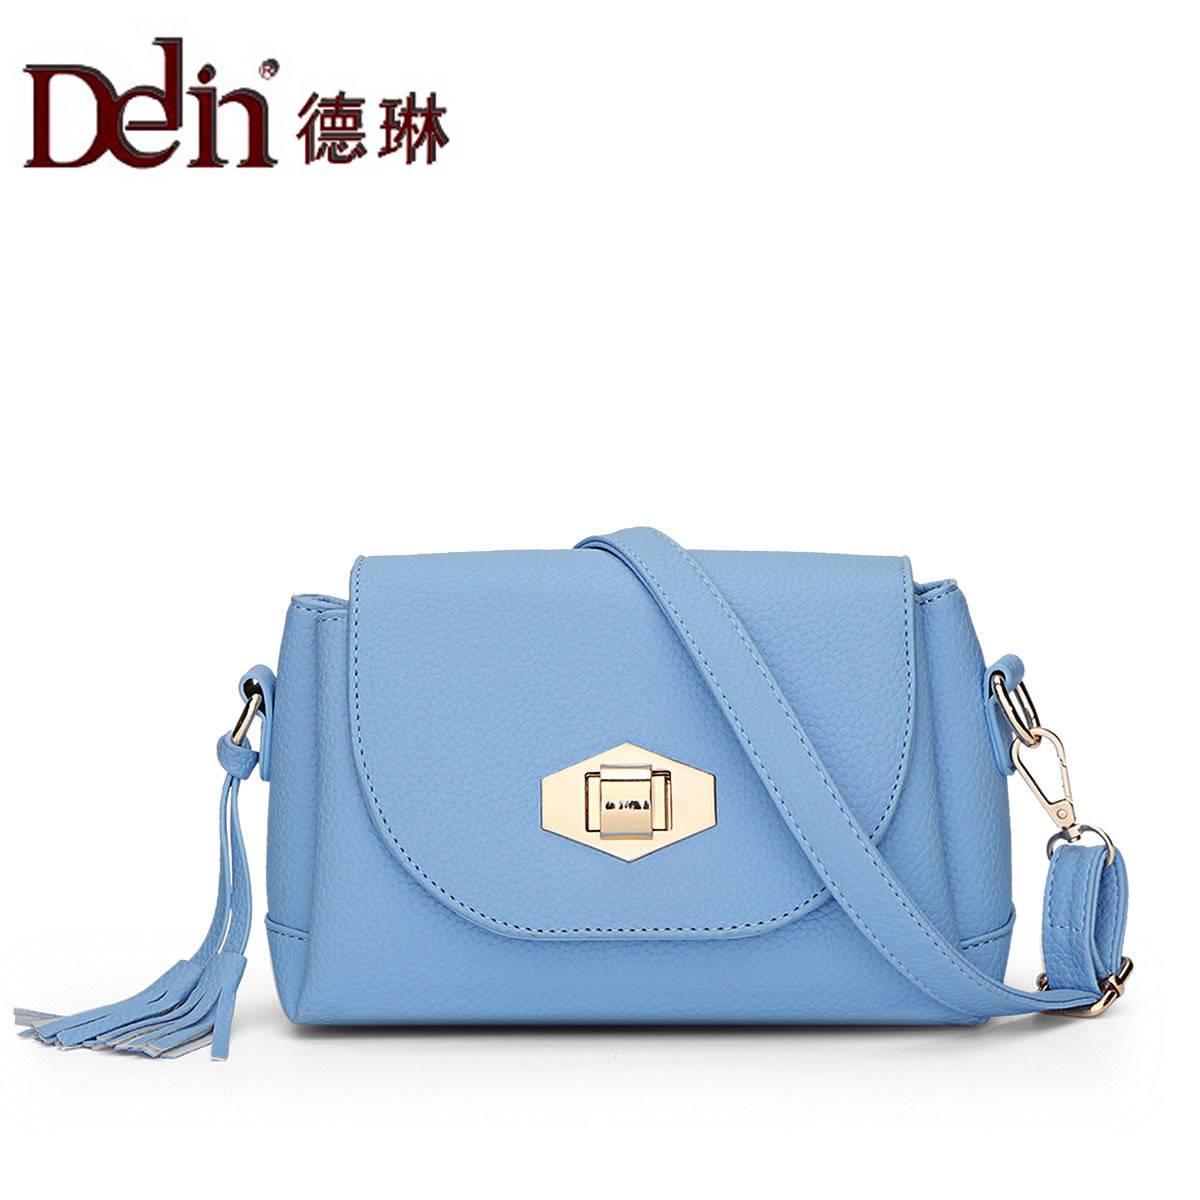 DELIN The new spring 2017 han edition fashion handbag hand shoulder slope of bag qiu dong season with plush slippers female students in the summer of 2017 the new han edition joker fashion wears outside a word